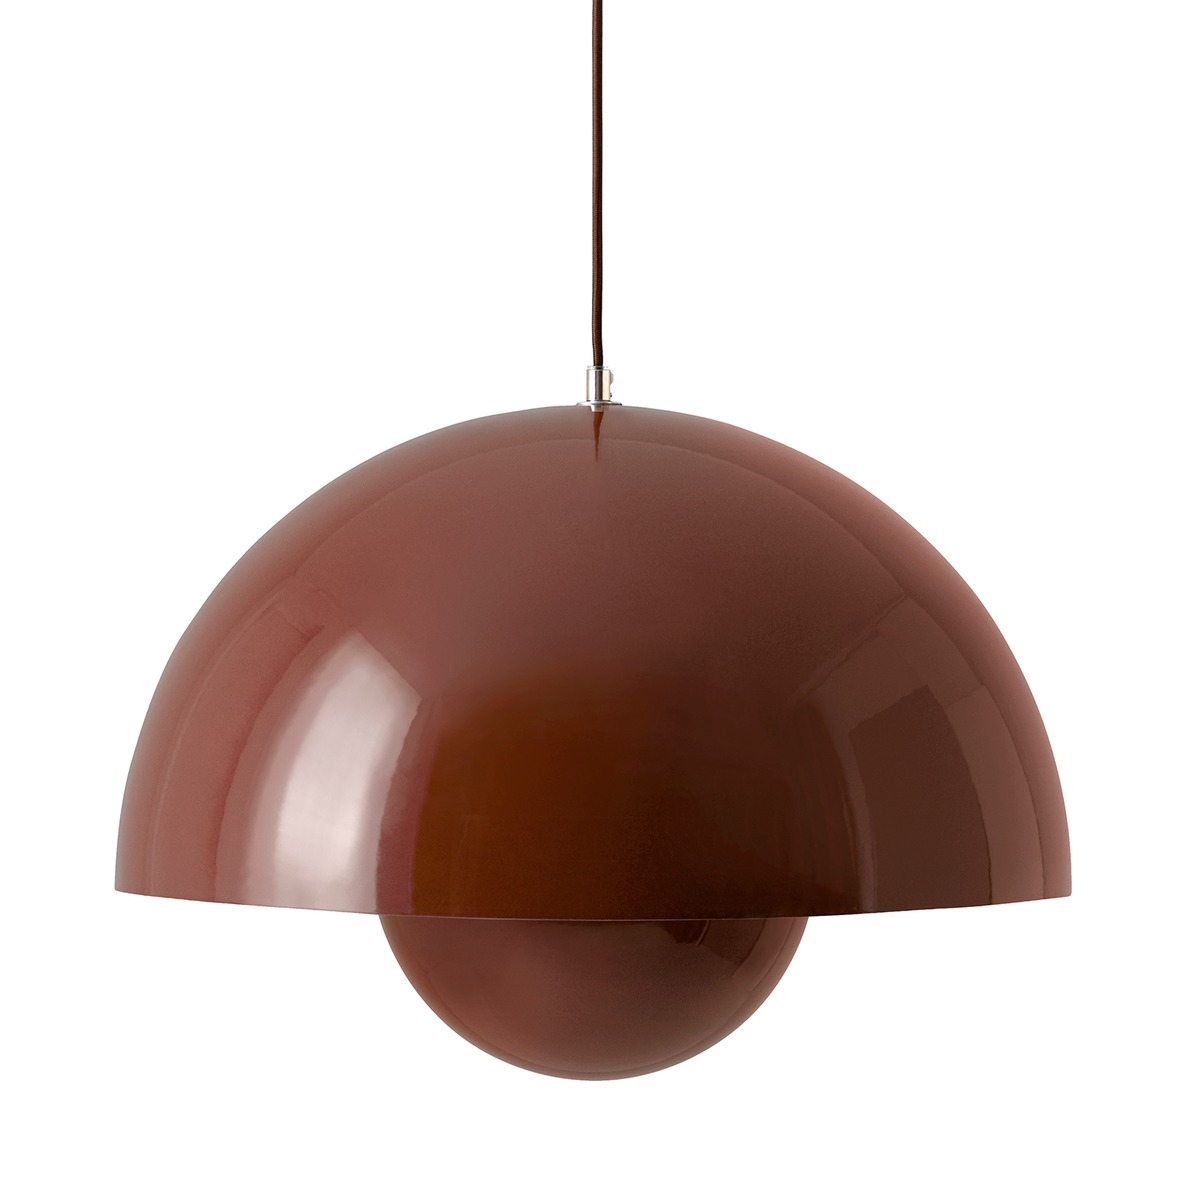 &Tradition Flowerpot VP2 pendant, red brown from &Tradition